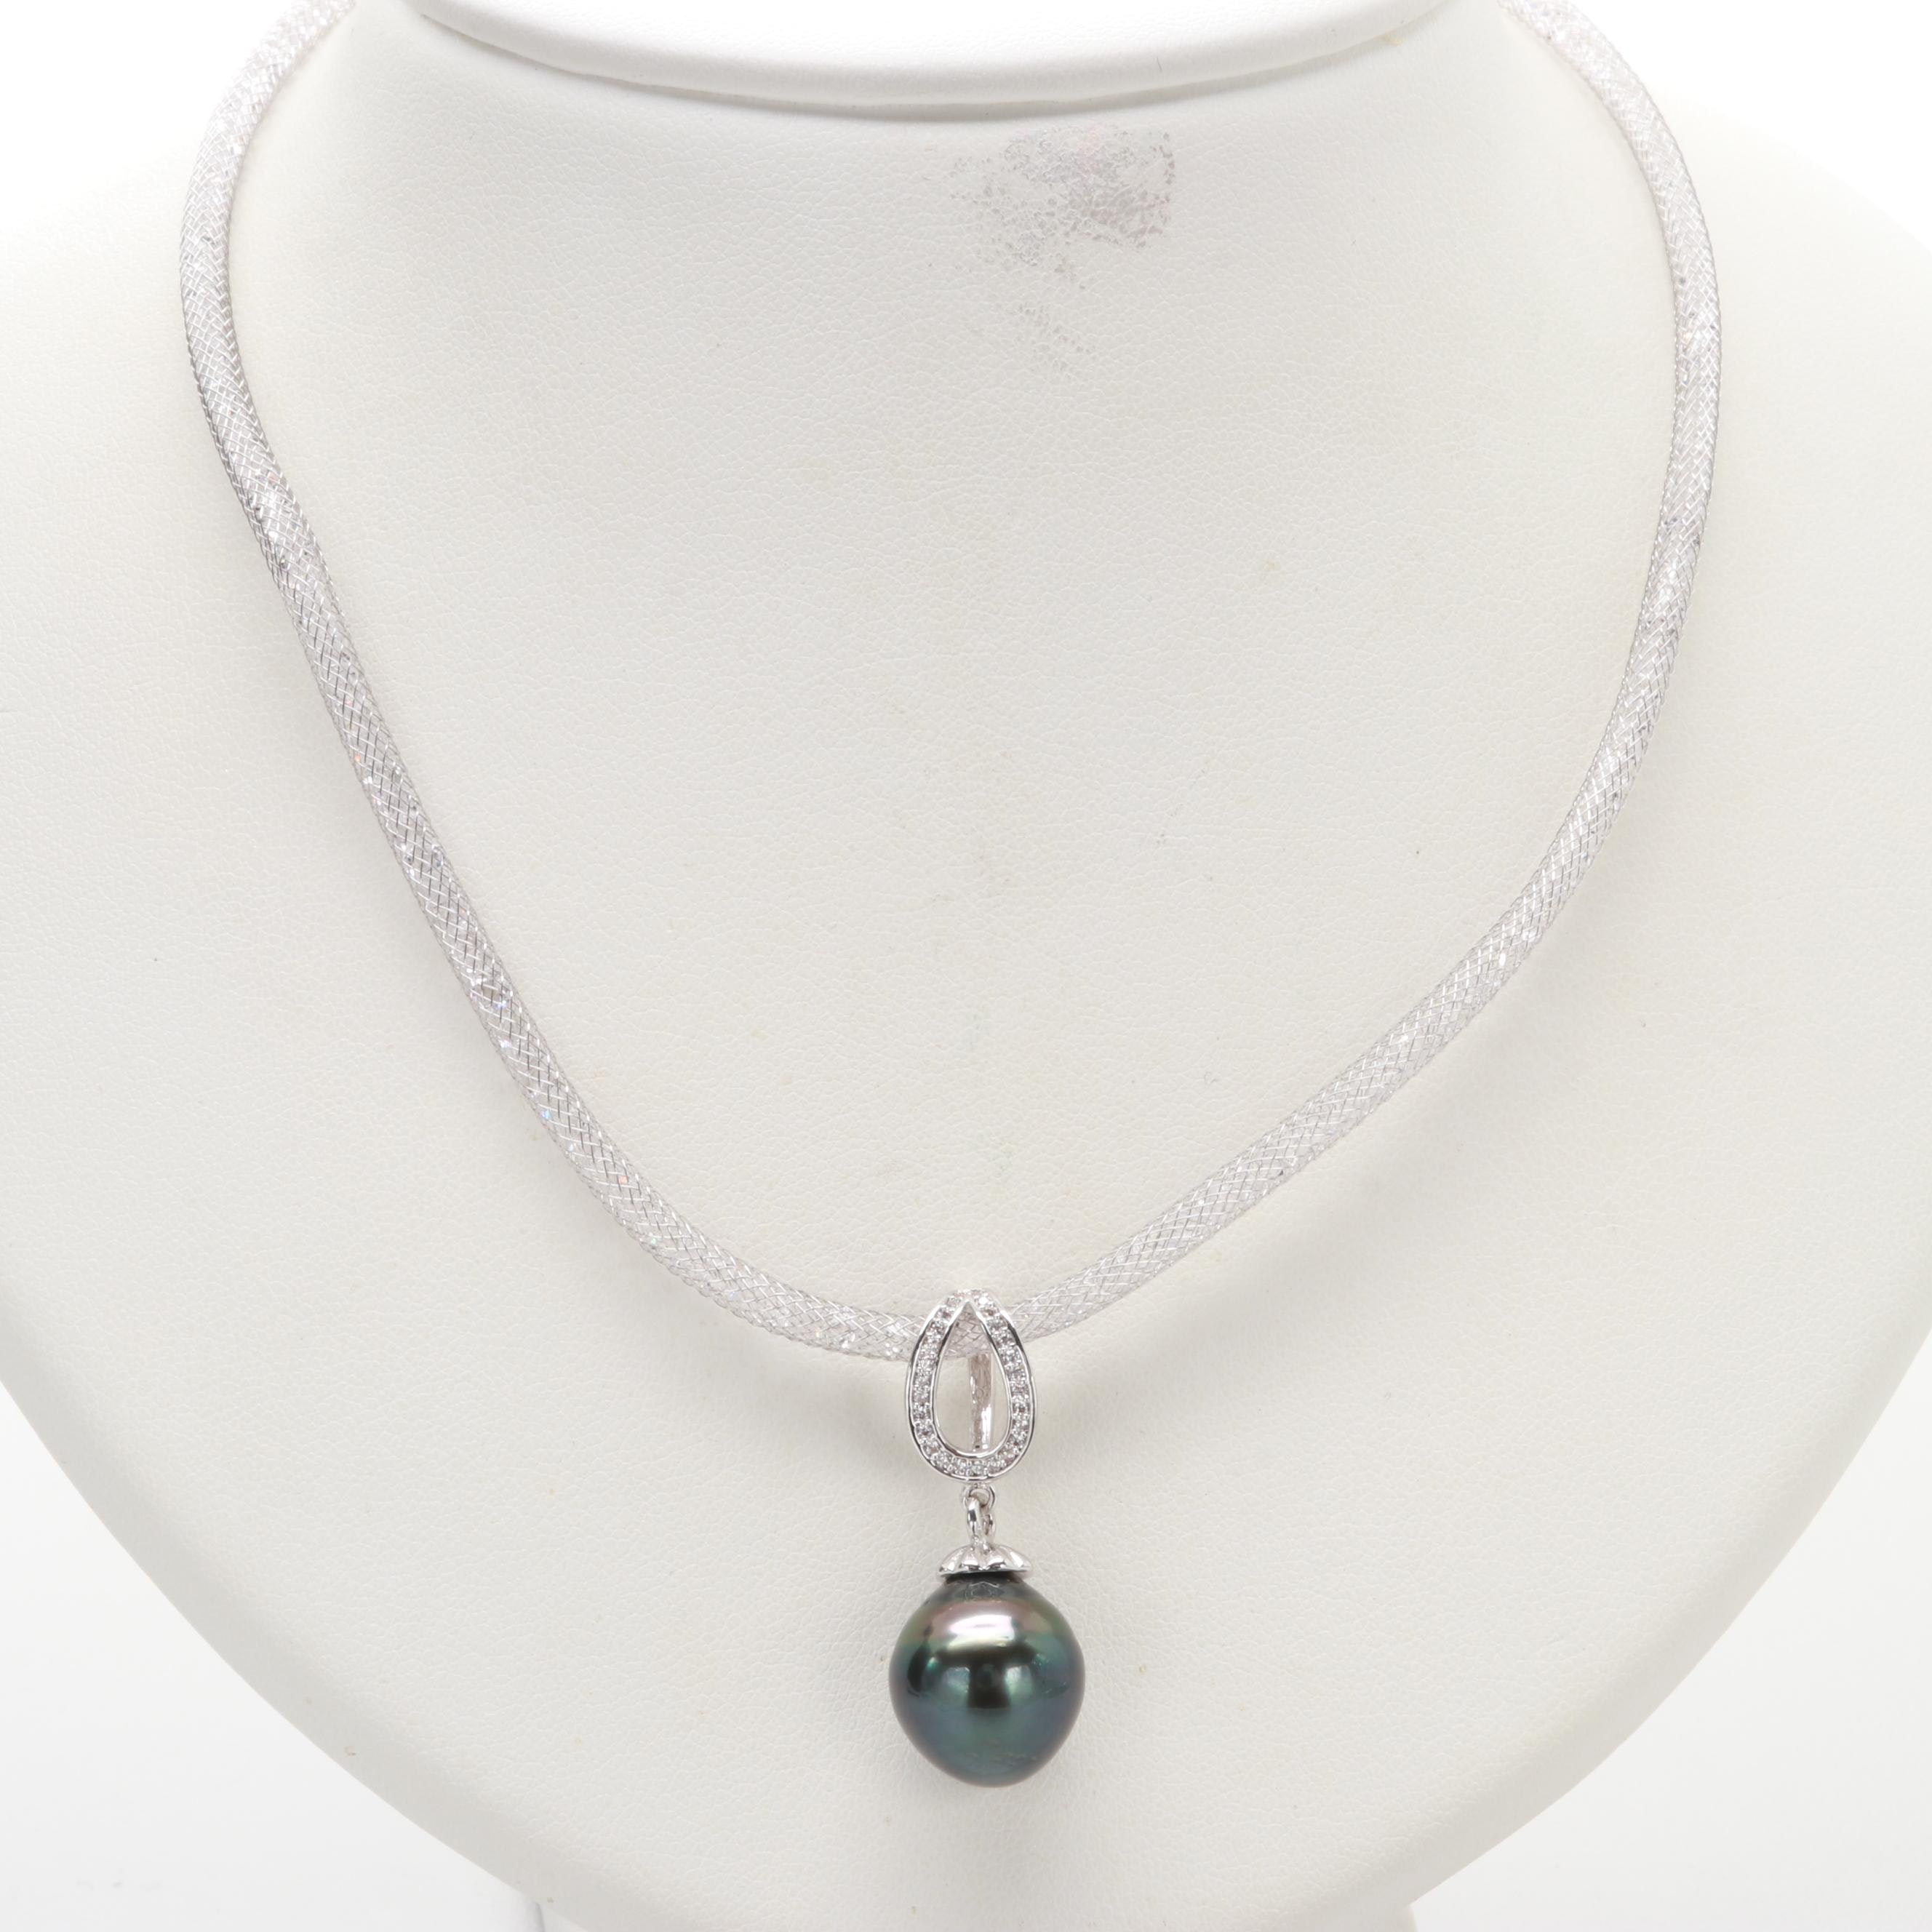 Silver Tone Cultured Pearl and Cubic Zirconia Pendant Necklace